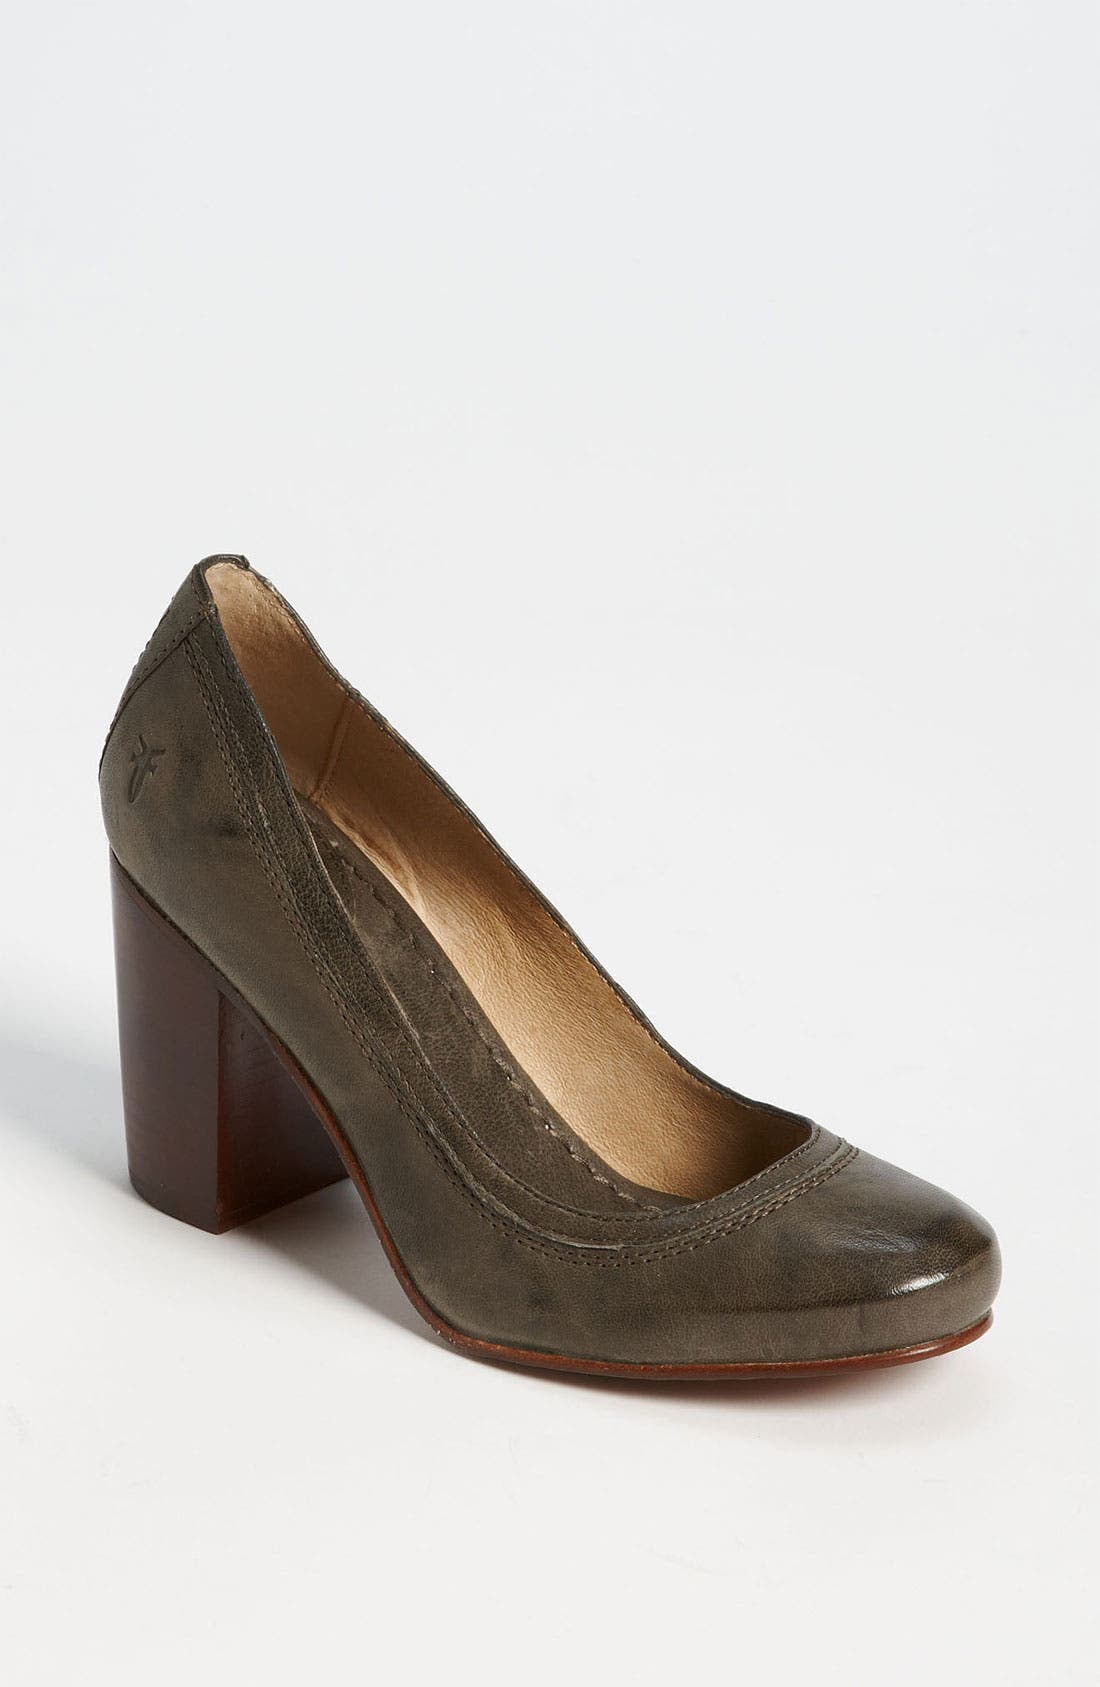 Alternate Image 1 Selected - Frye 'Carson' Pump